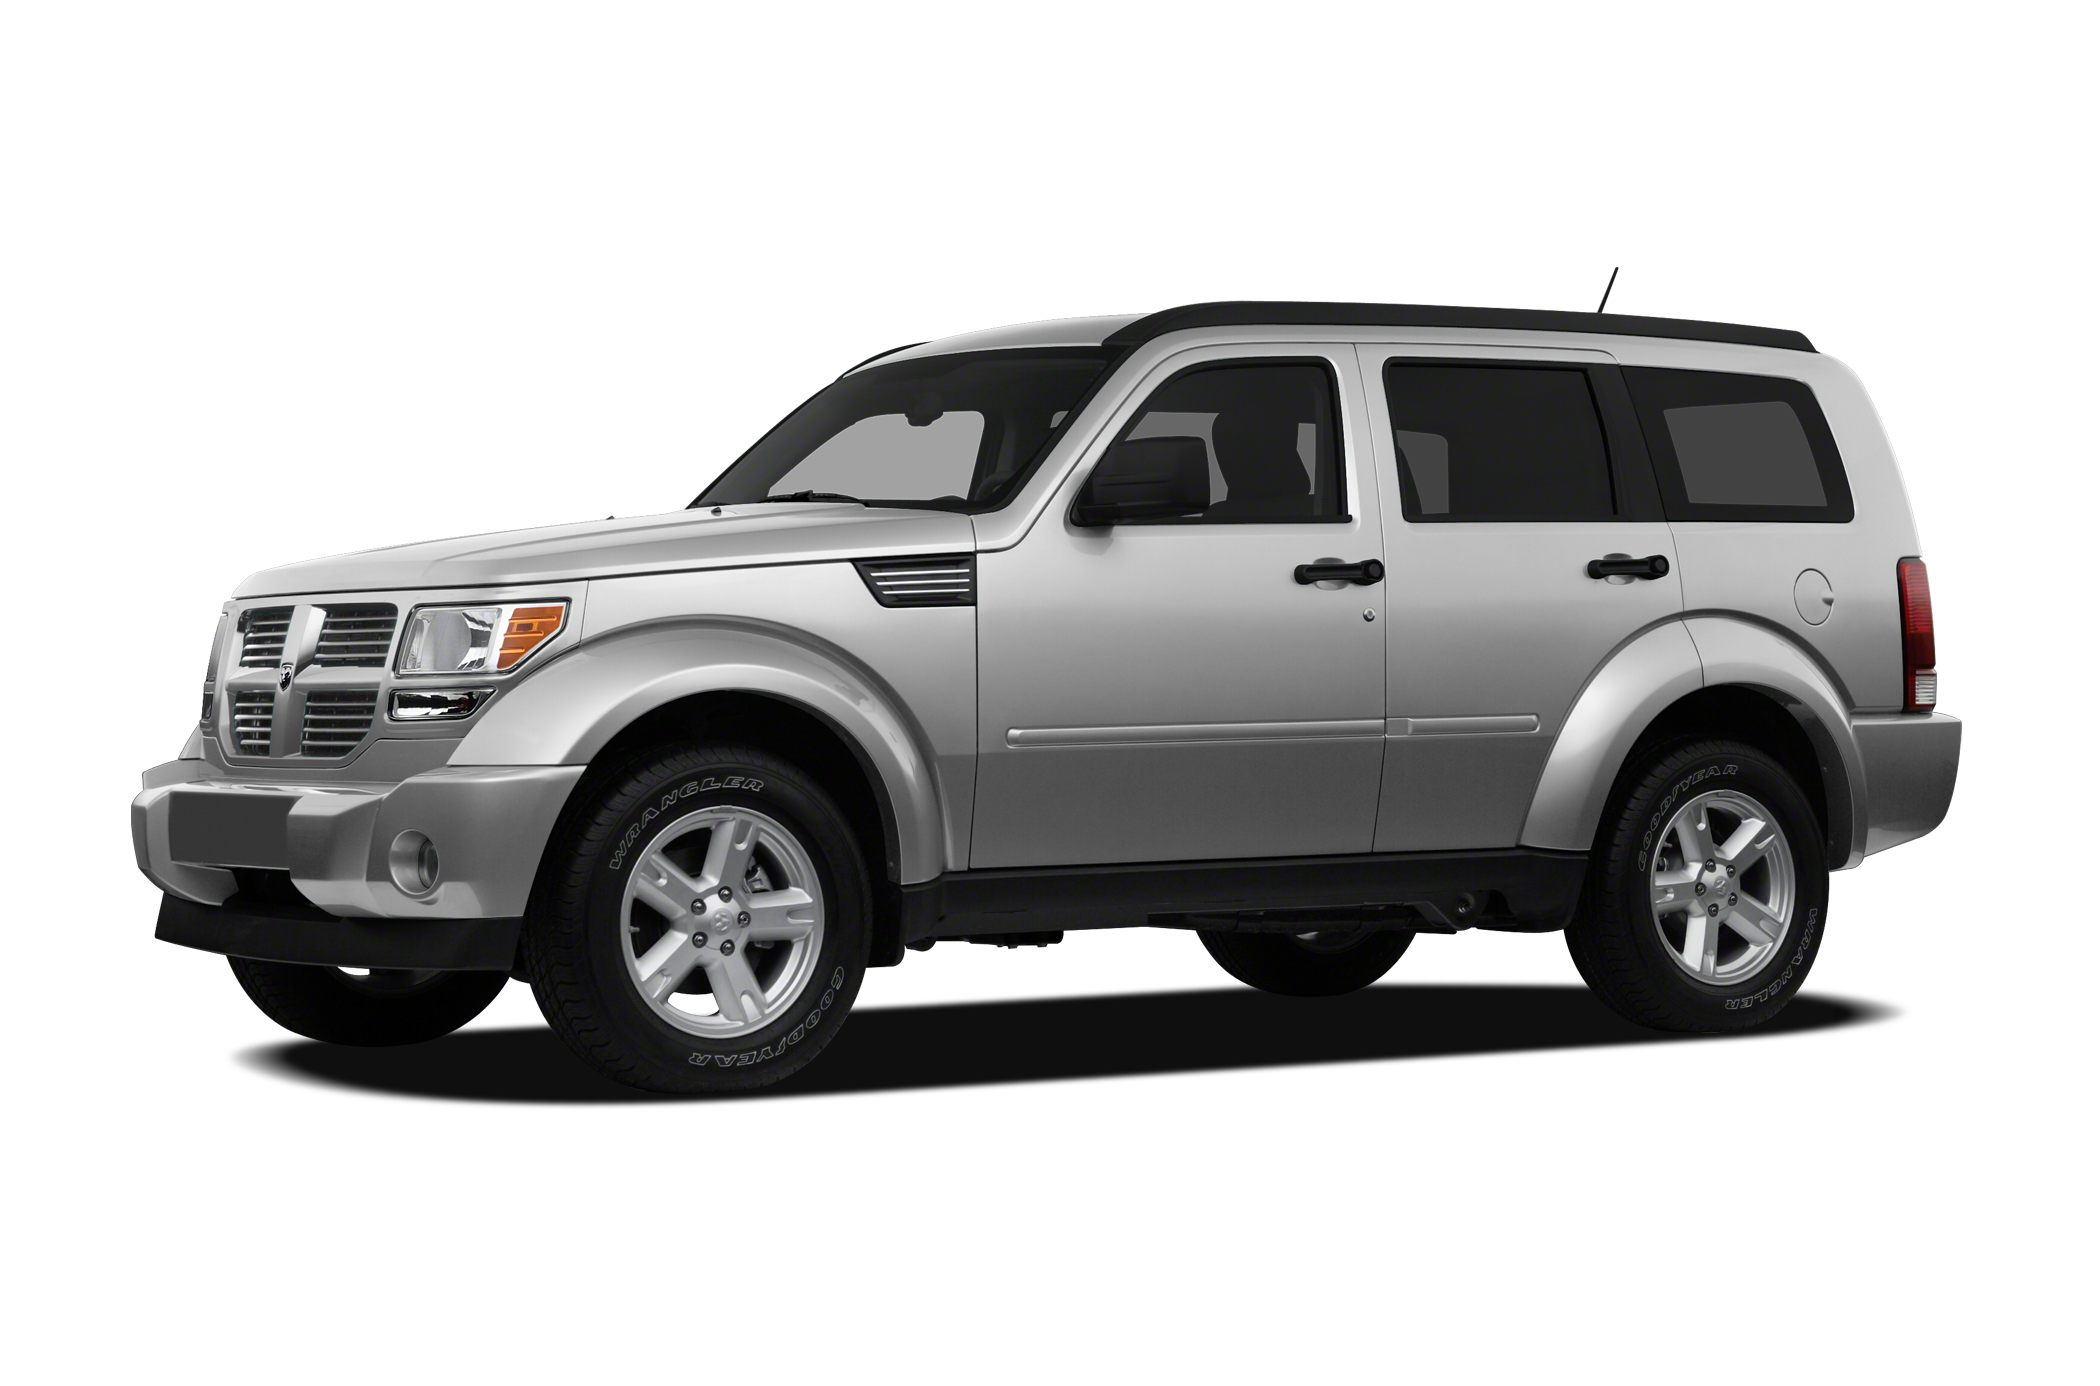 2011 Dodge Nitro